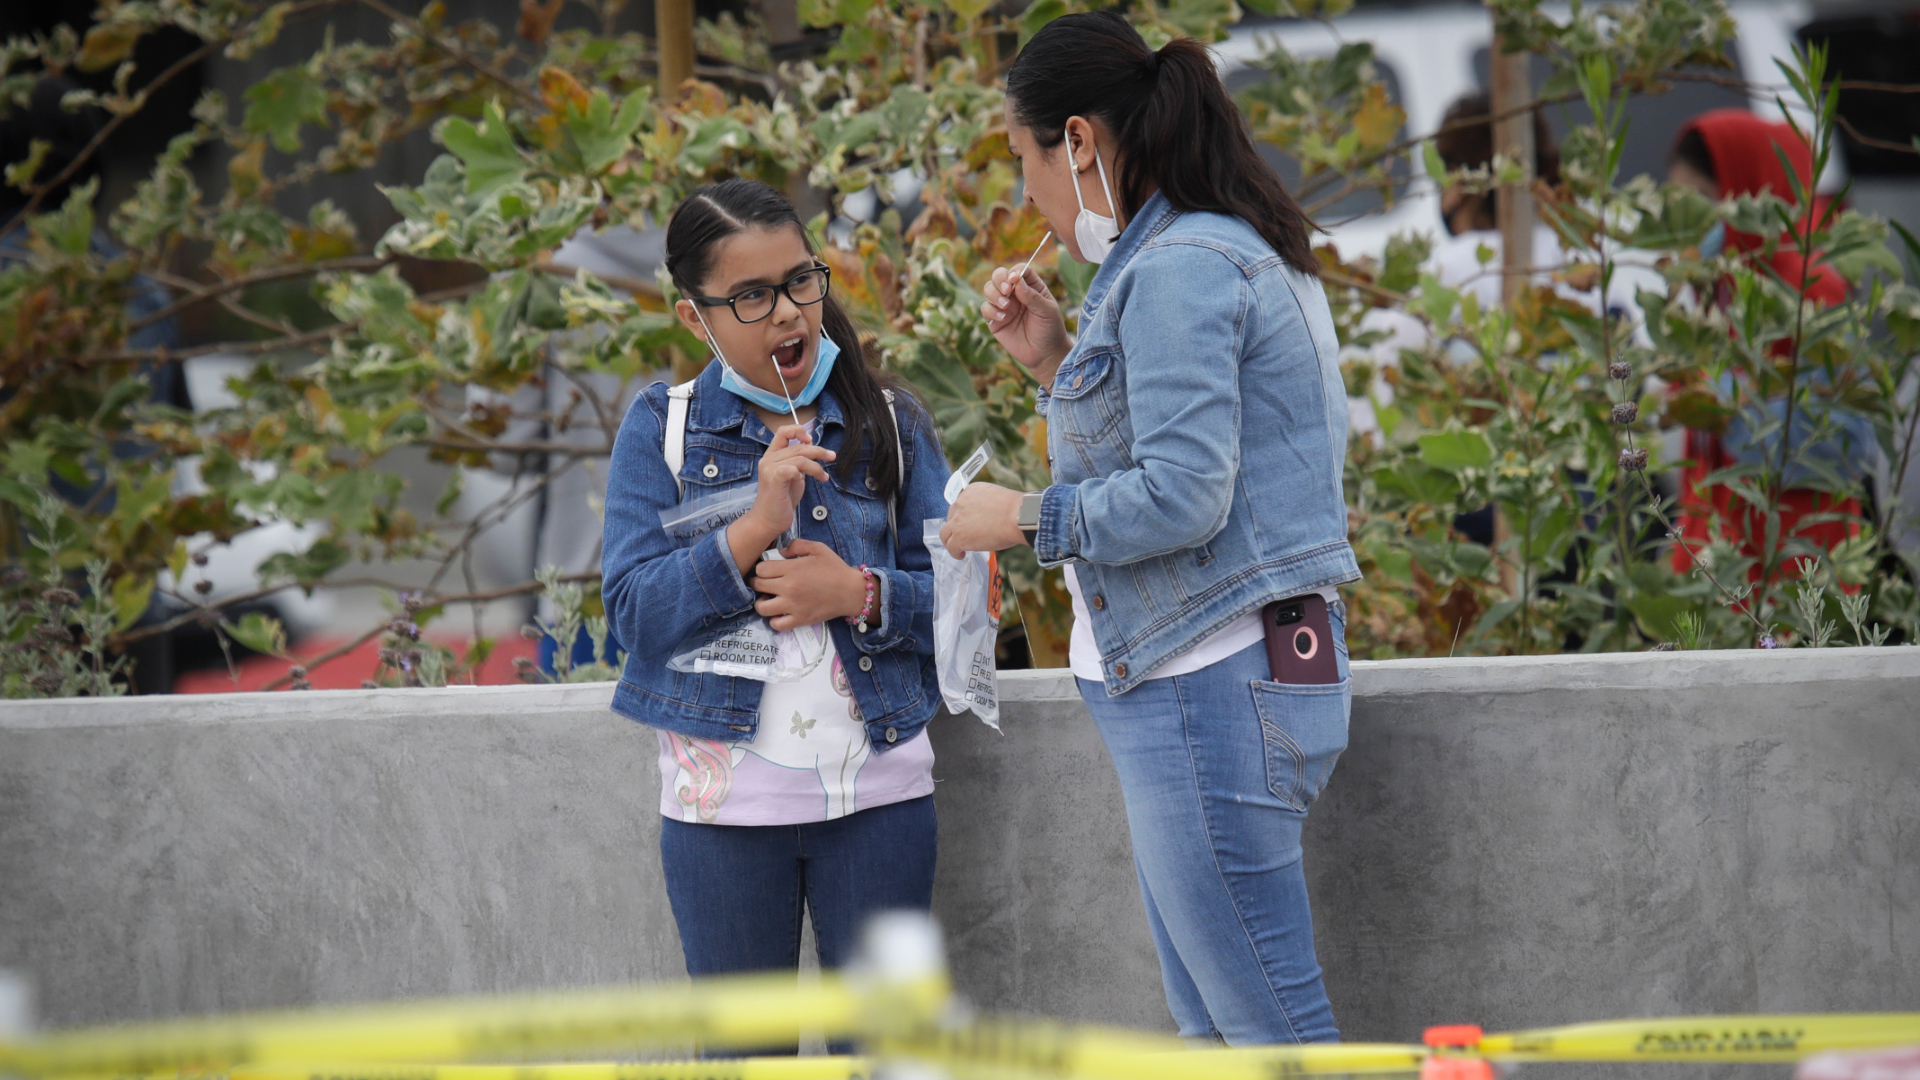 A woman and girl take a coronavirus test together in Los Angeles on July 22, 2020. (Marcio Jose Sanchez / Associated Press)